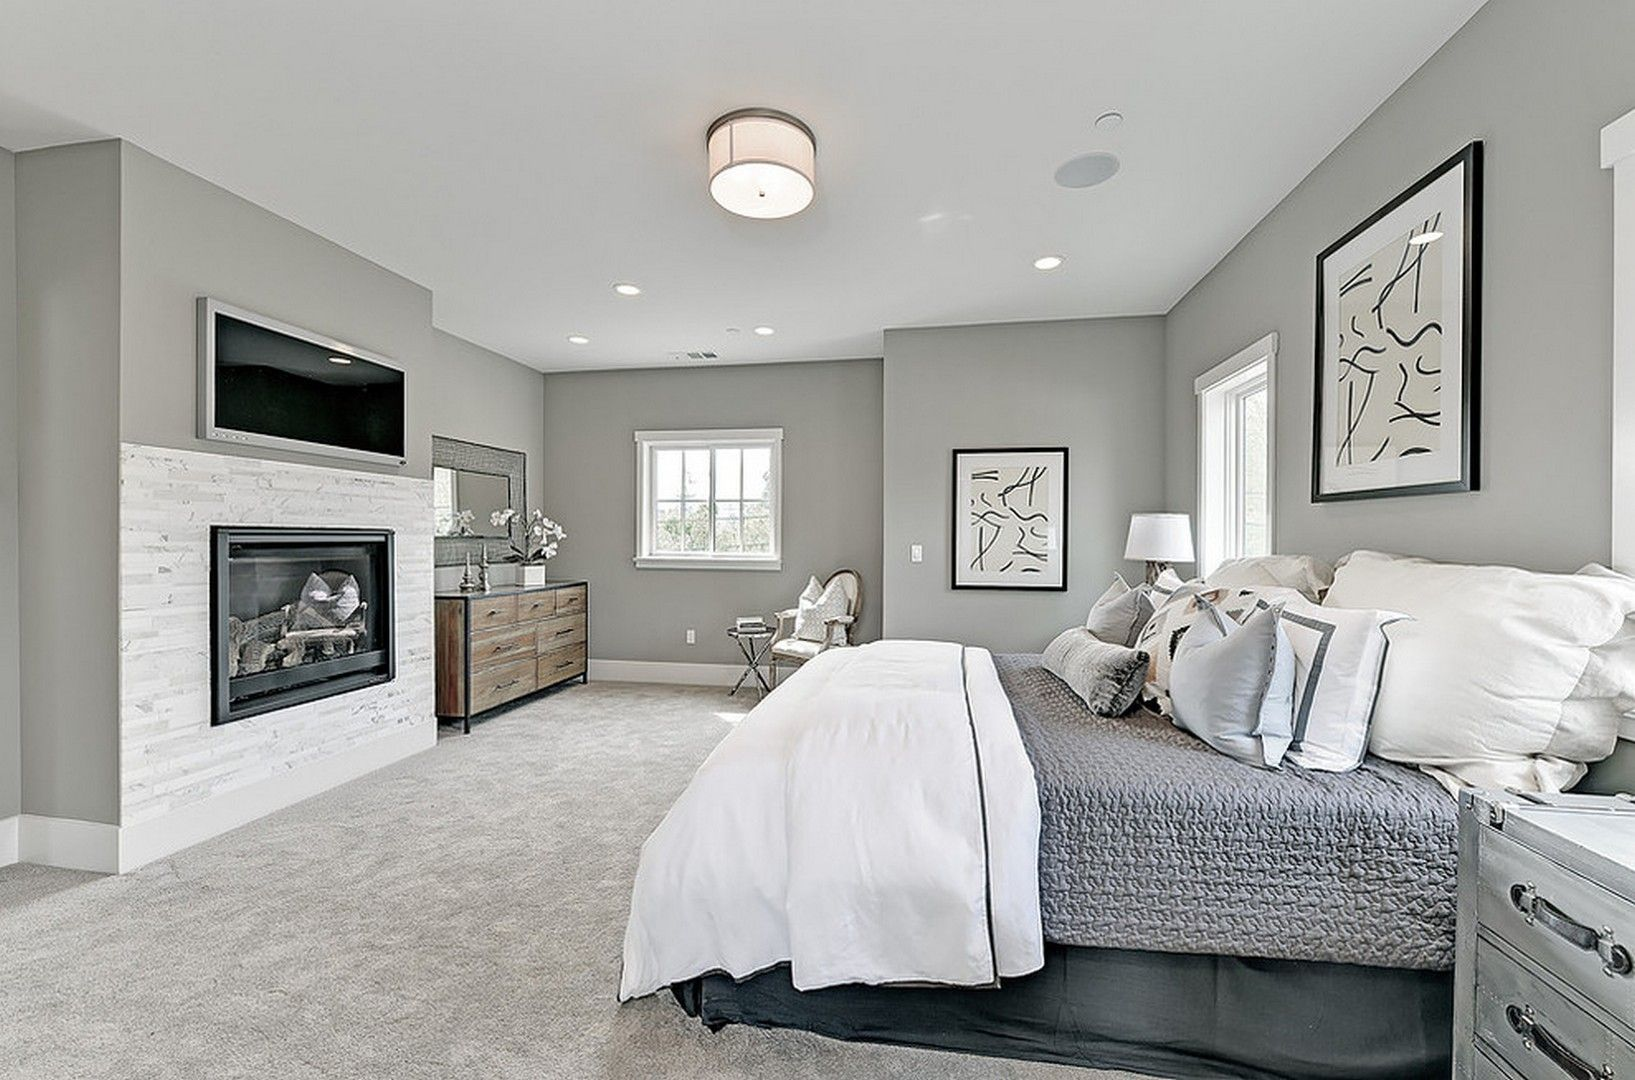 28 Grey Carpet Bedroom Ideas That Will Embrace The Sophisticated Look Gray Bedroom Walls Grey Carpet Bedroom Gray Master Bedroom